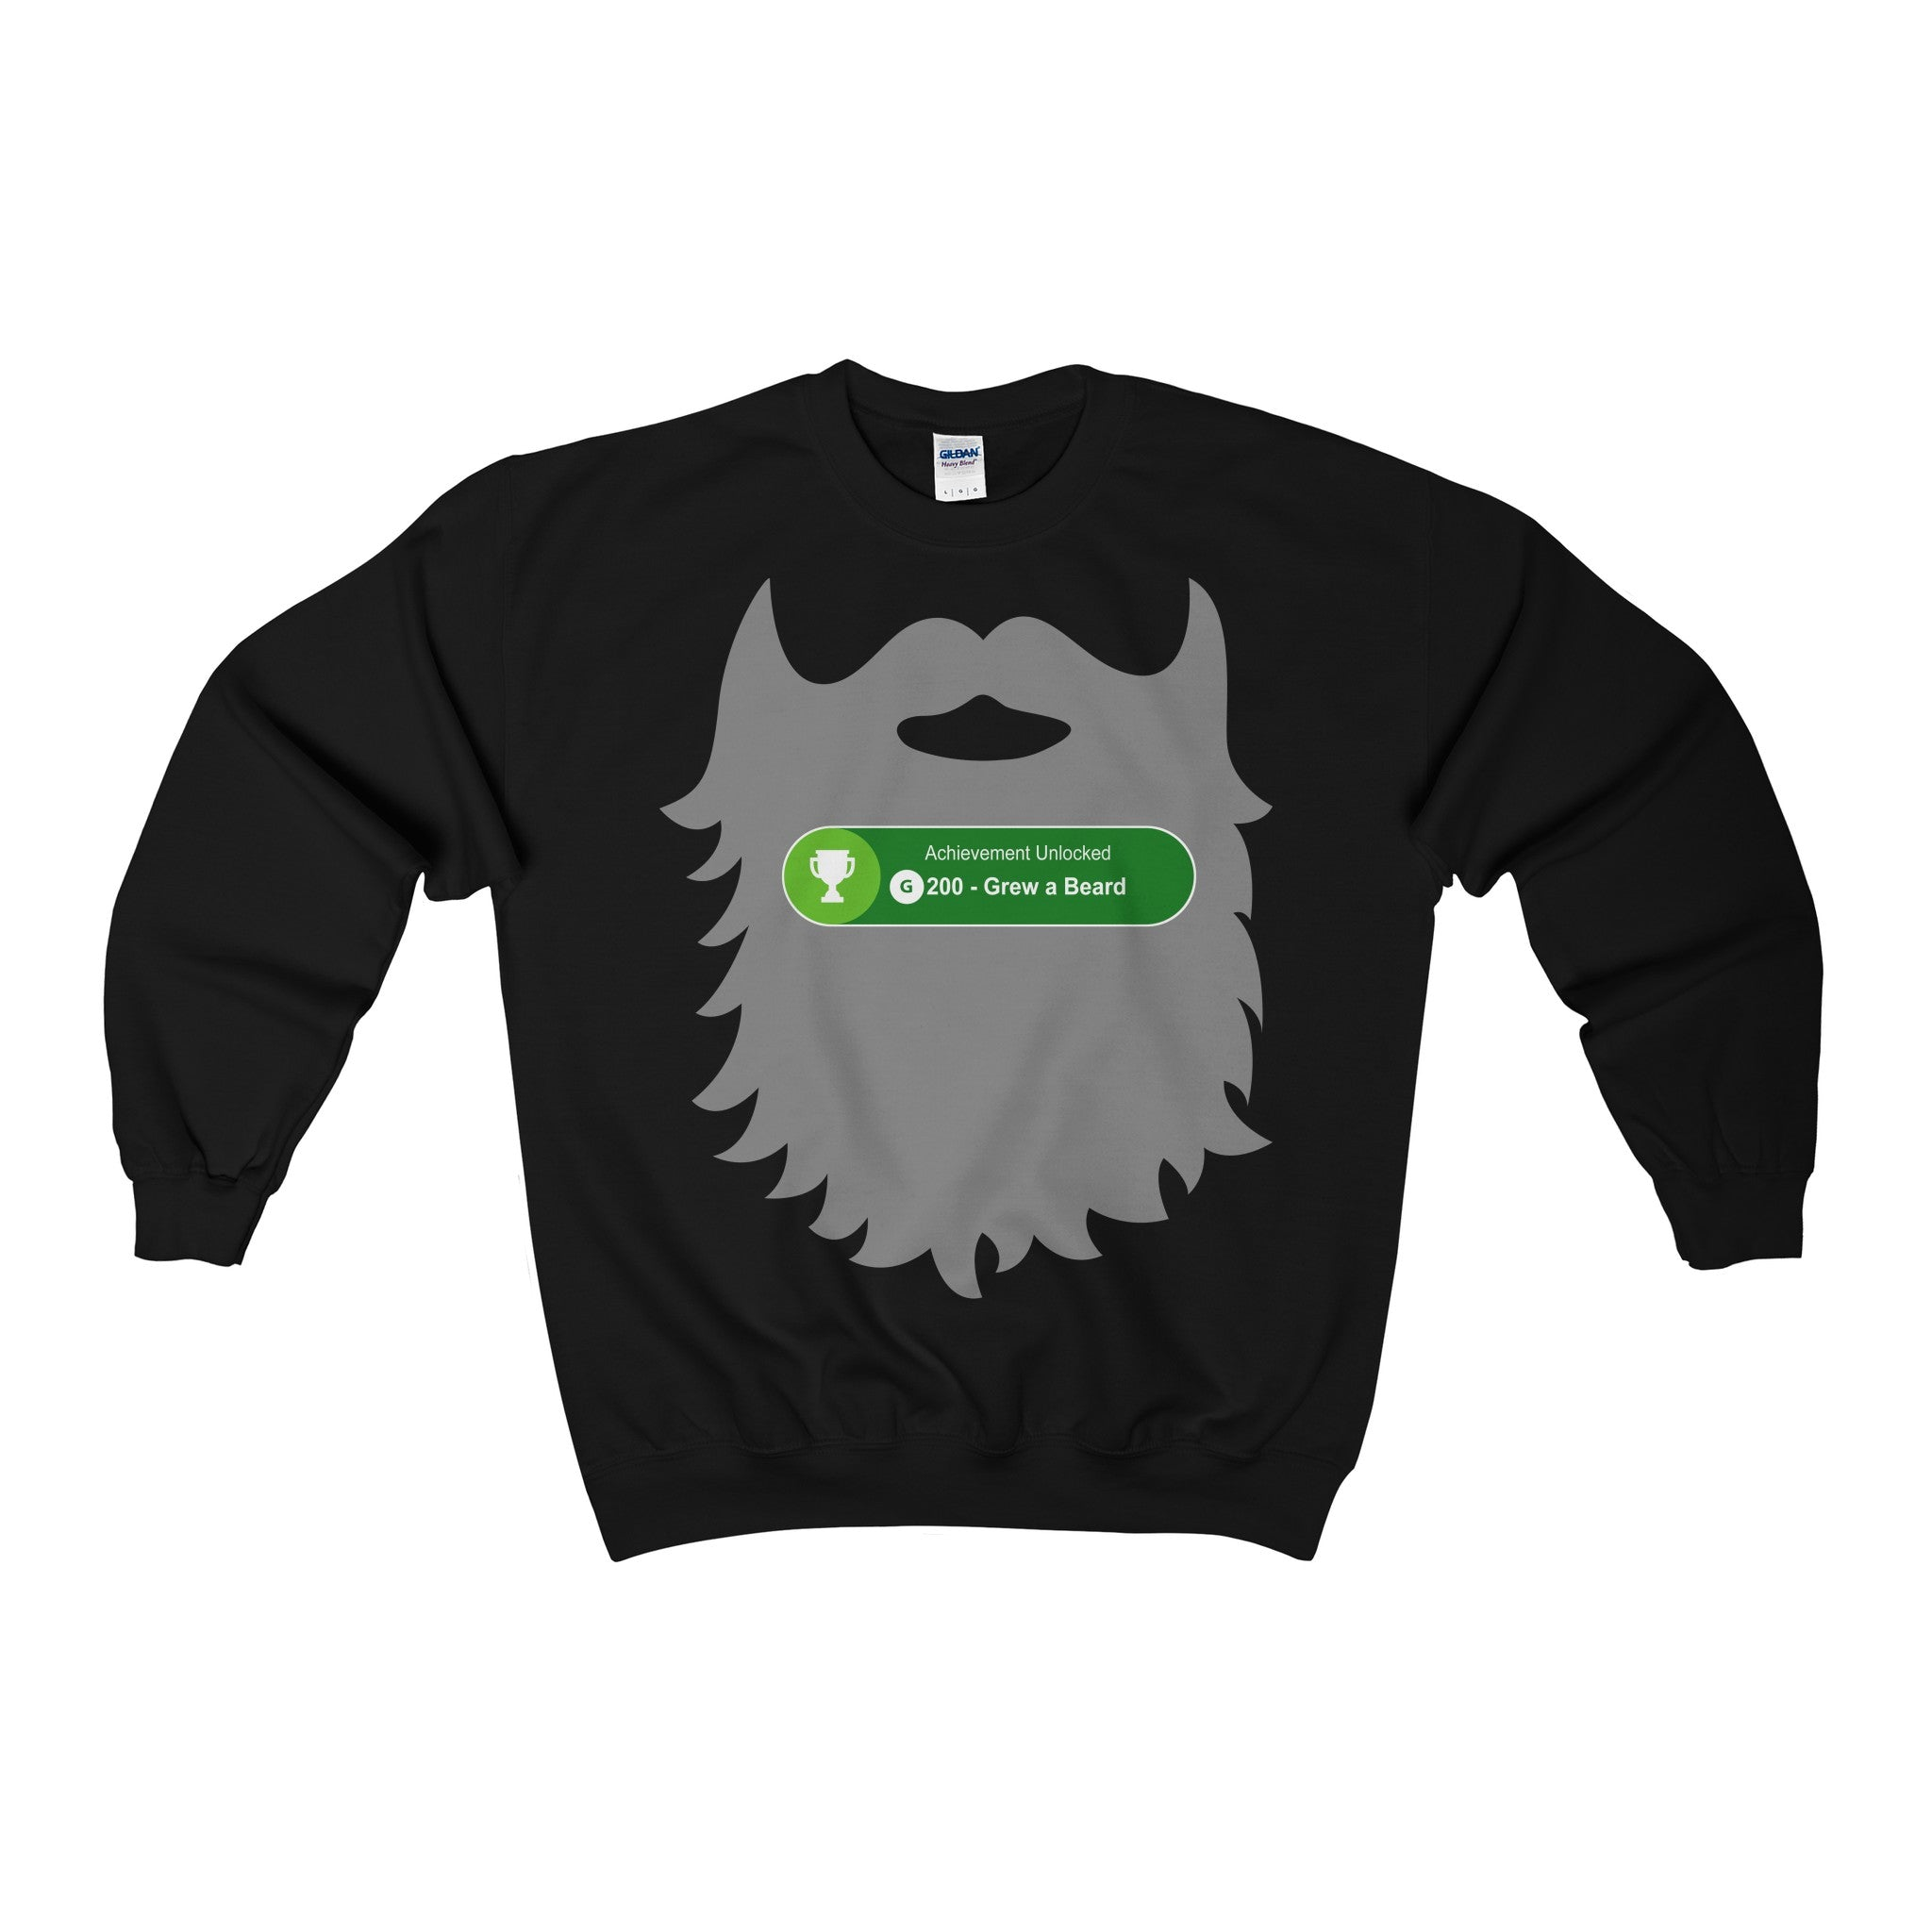 achievement unlocked xbox gaming grew beard men's unisex sweatshirt jumper